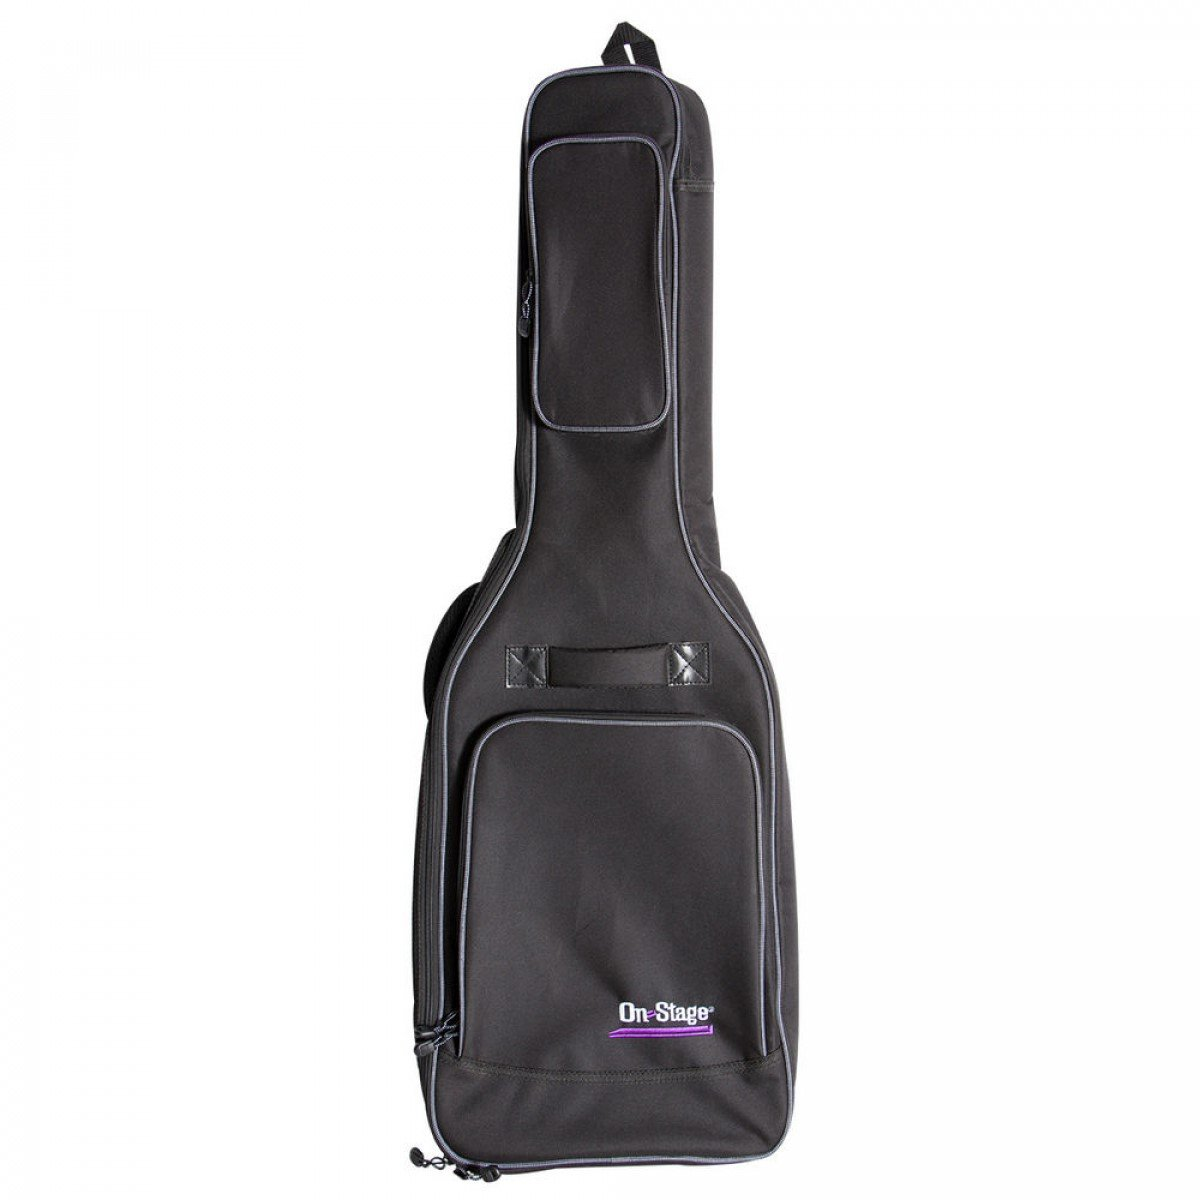 Onstage 4770 Series Deluxe Electric Guitar Gig Bag